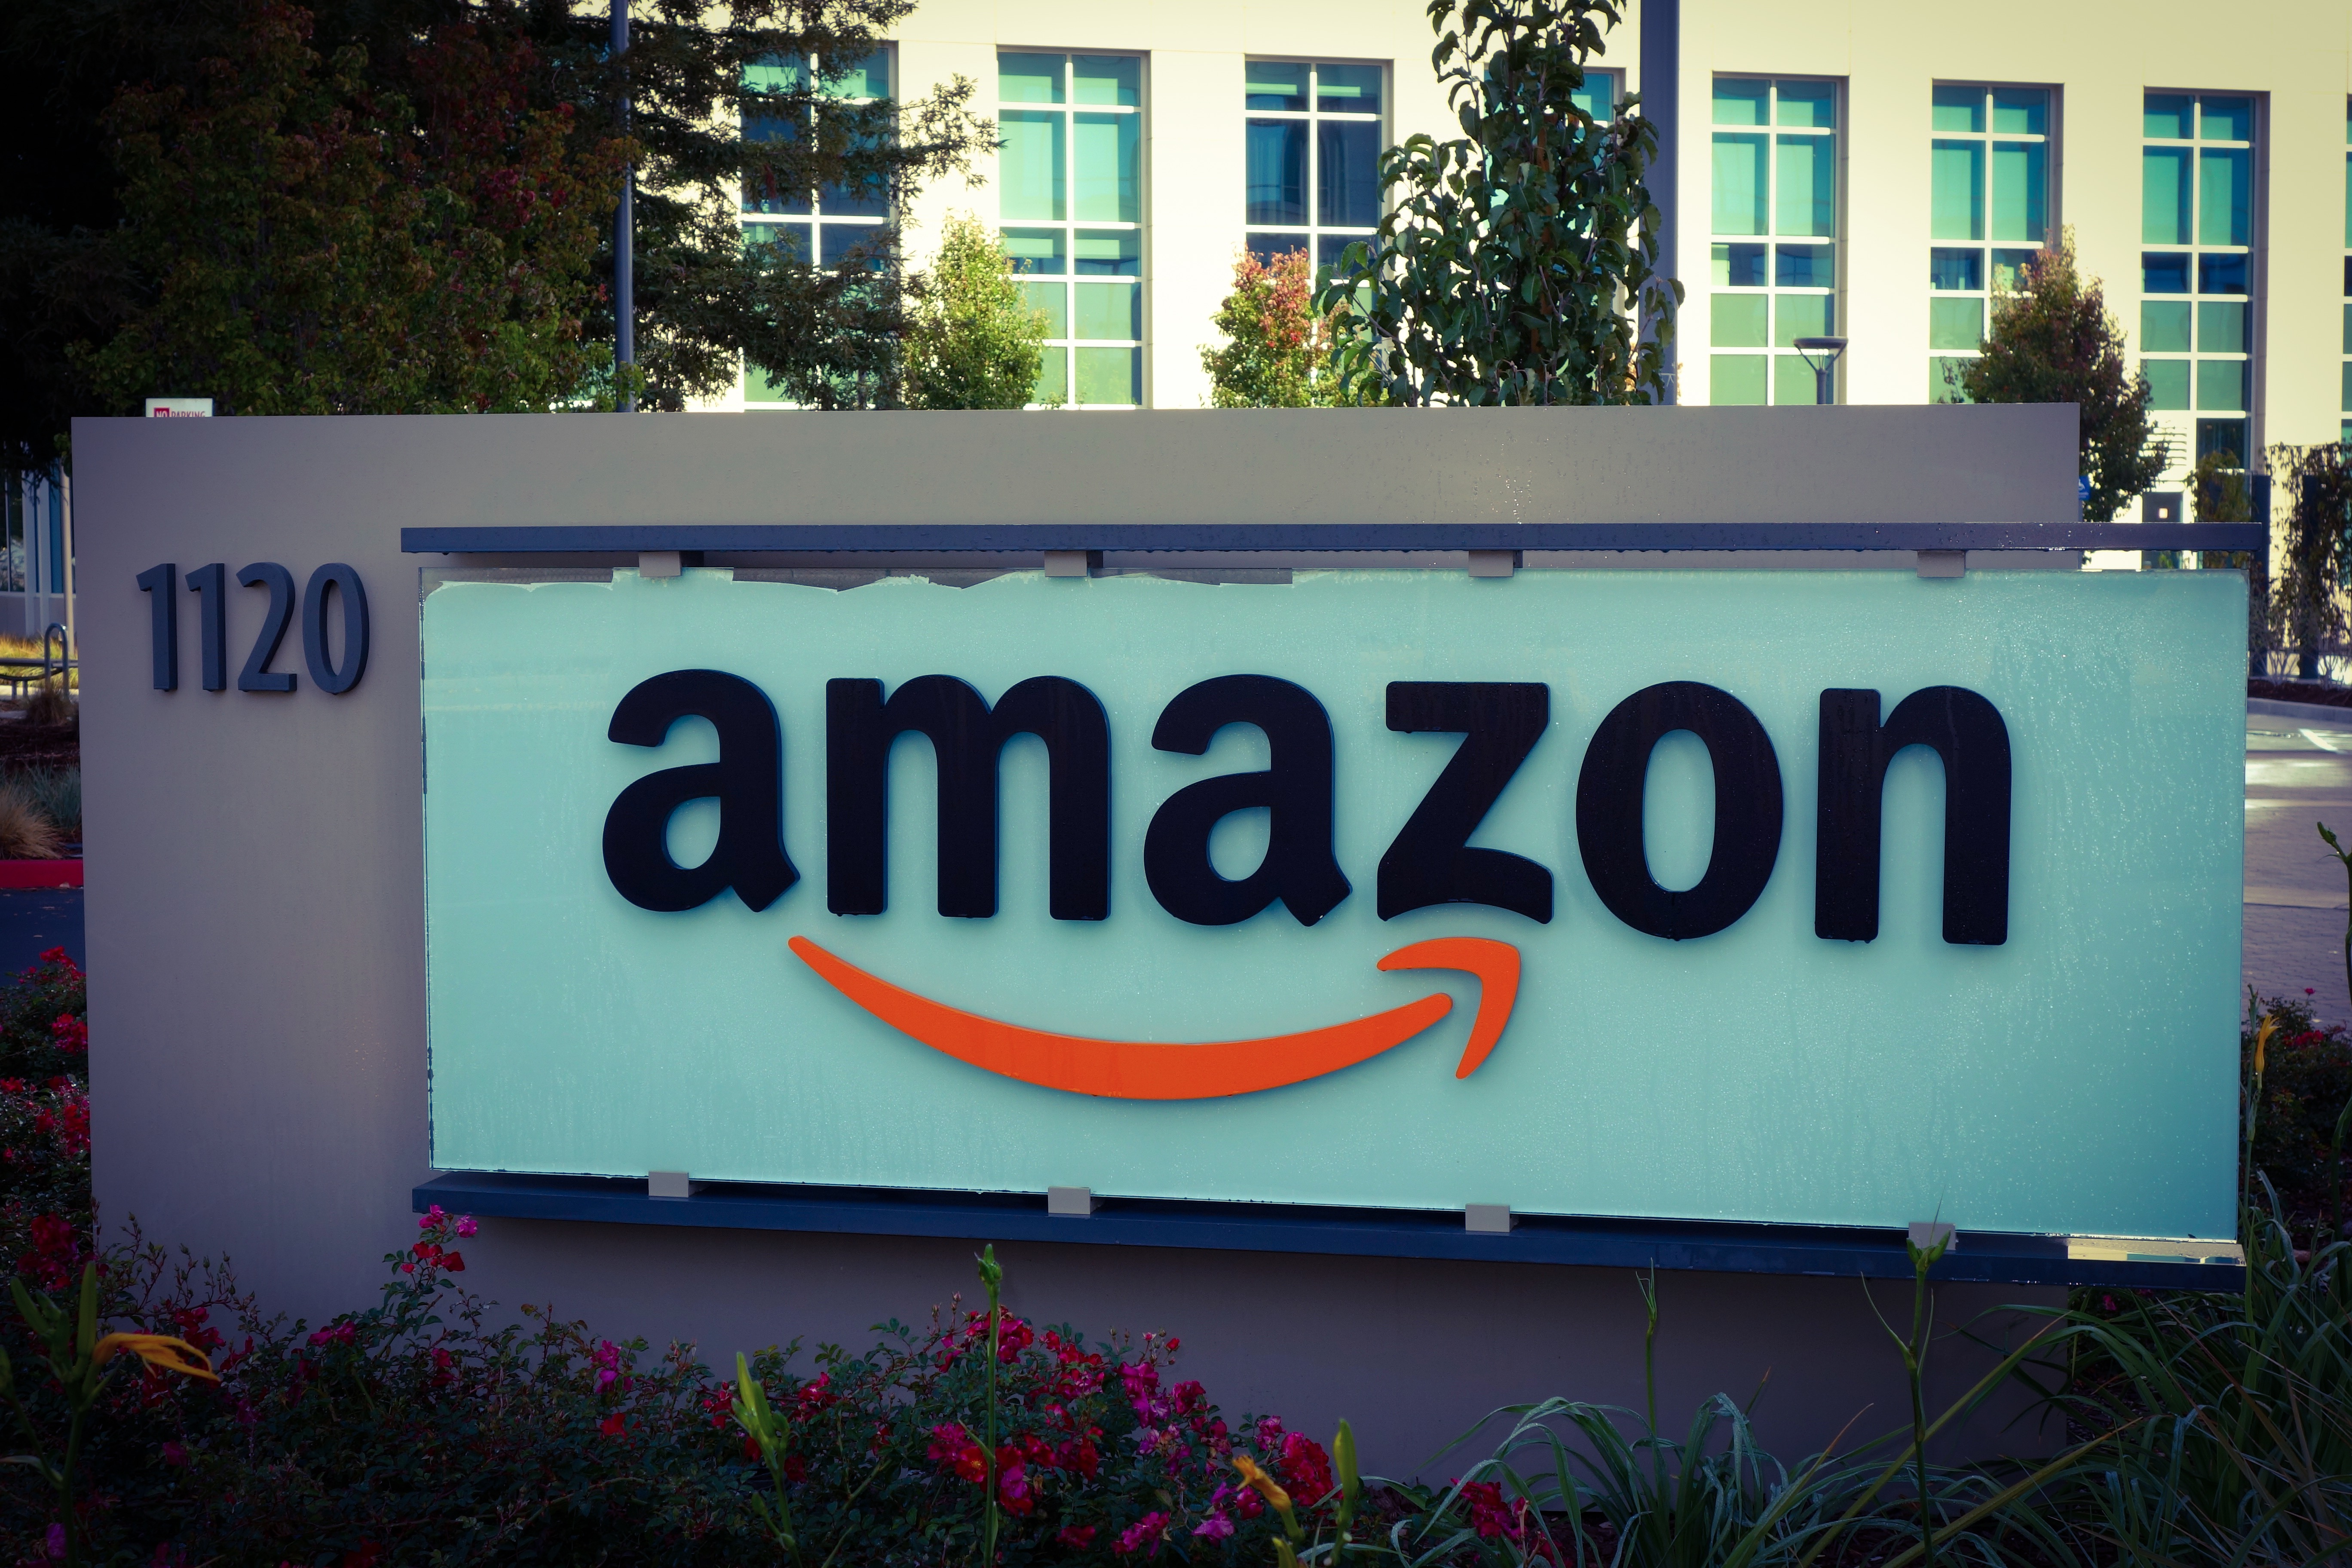 Amazon's Terrible Working Conditions Revealed by the New York Times